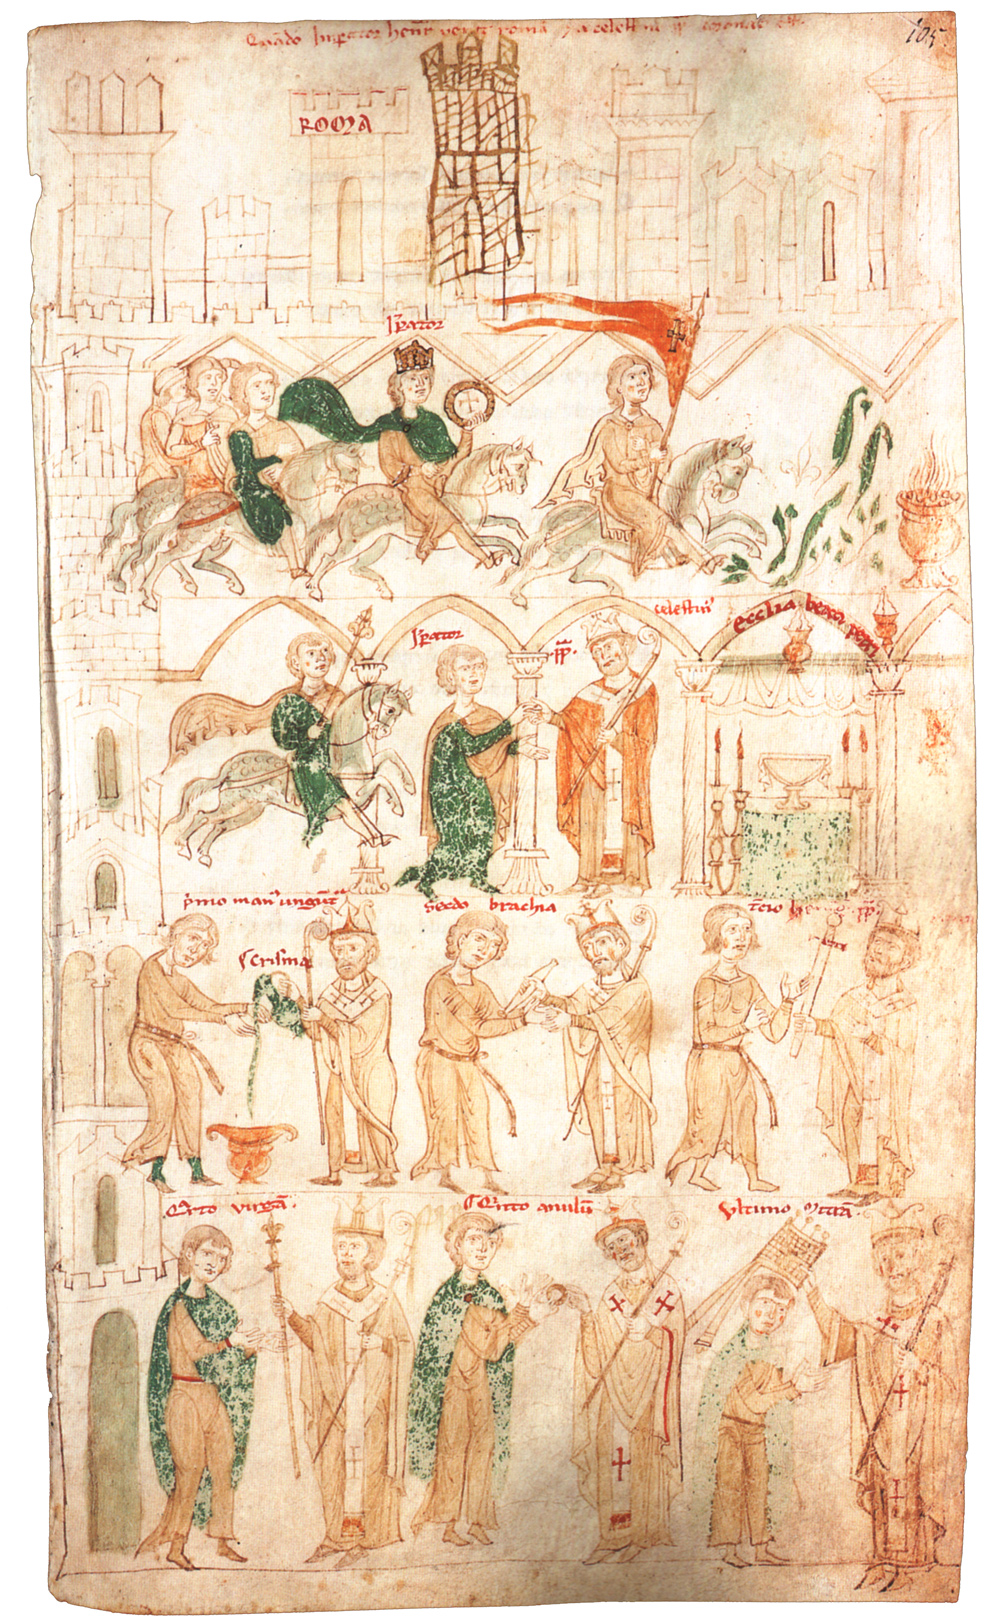 The enthronement of emperor Henry VI, illustration of 'Liber ad honorem Augusti' by Peter of Eboli, 1196, Palermo, Sicily